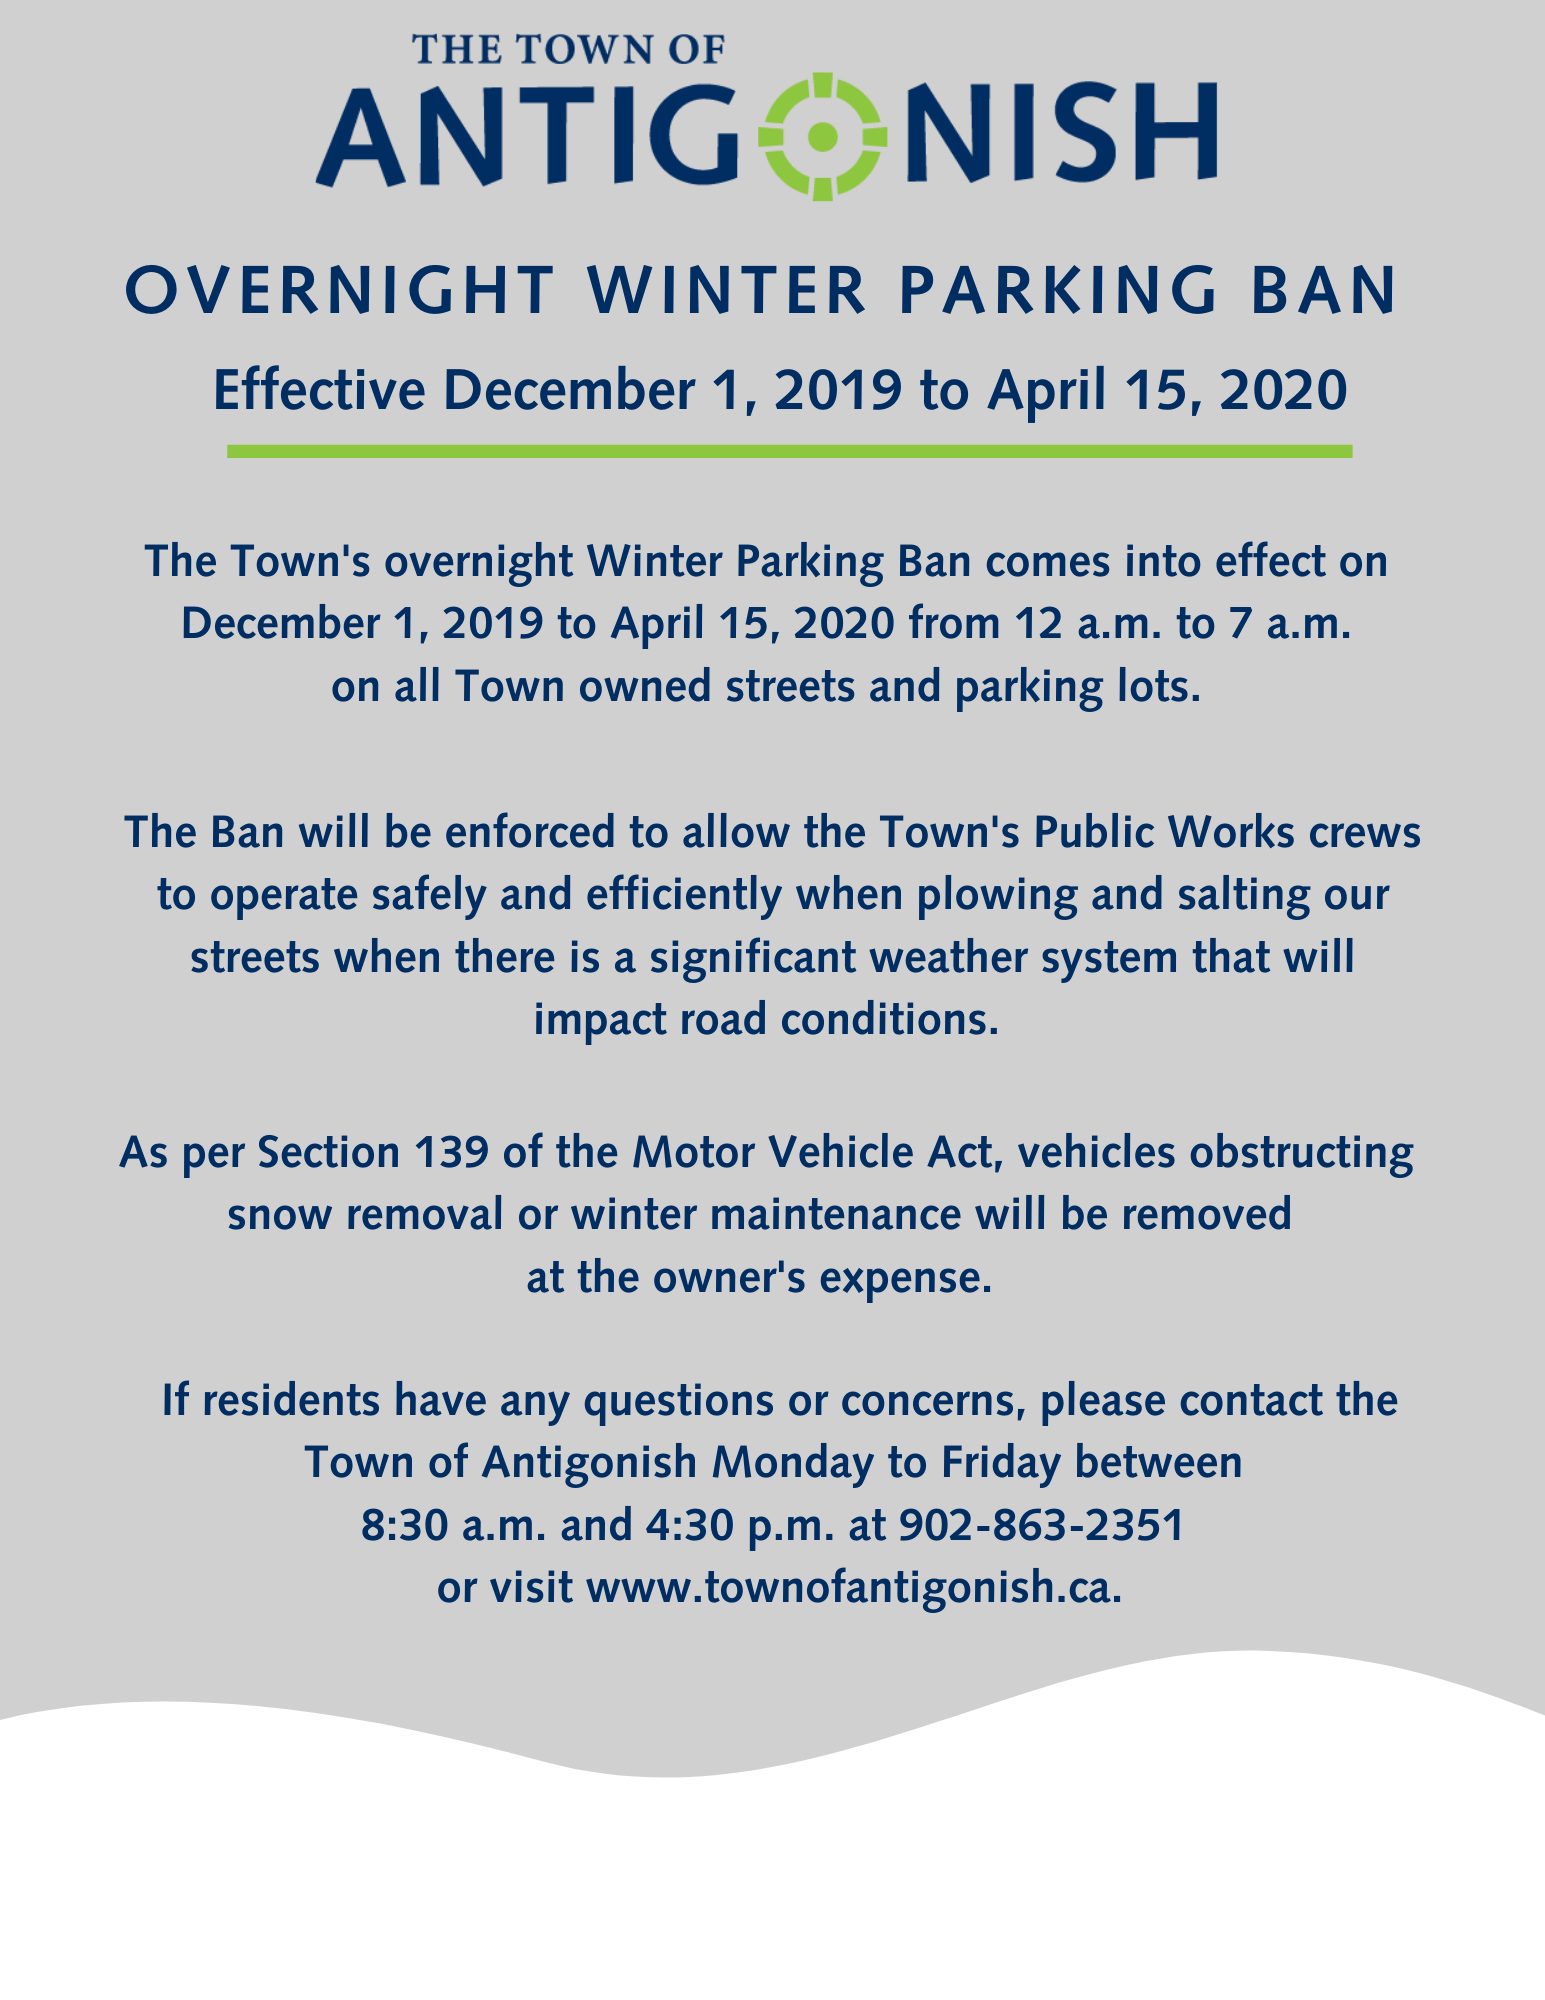 Winter parking ban poster. Same text as above.